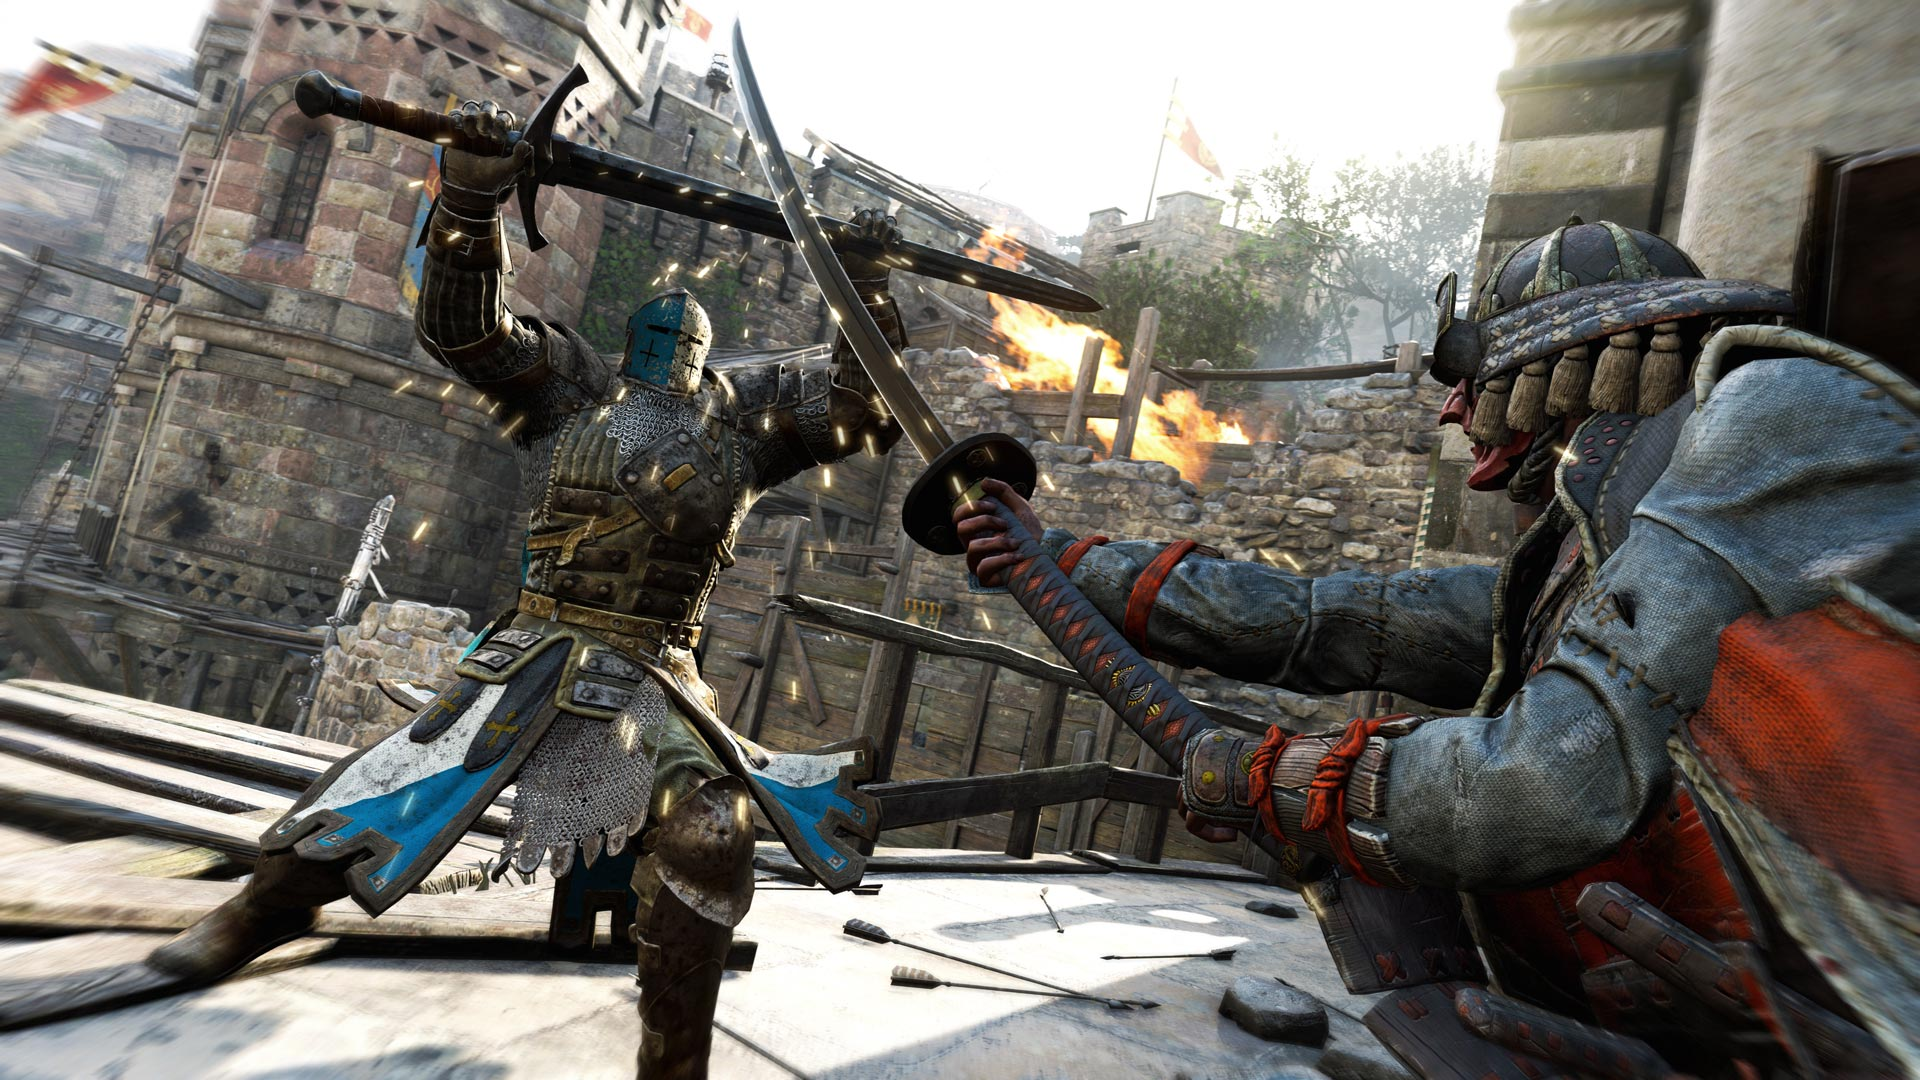 for honor wallpapers, pictures, images